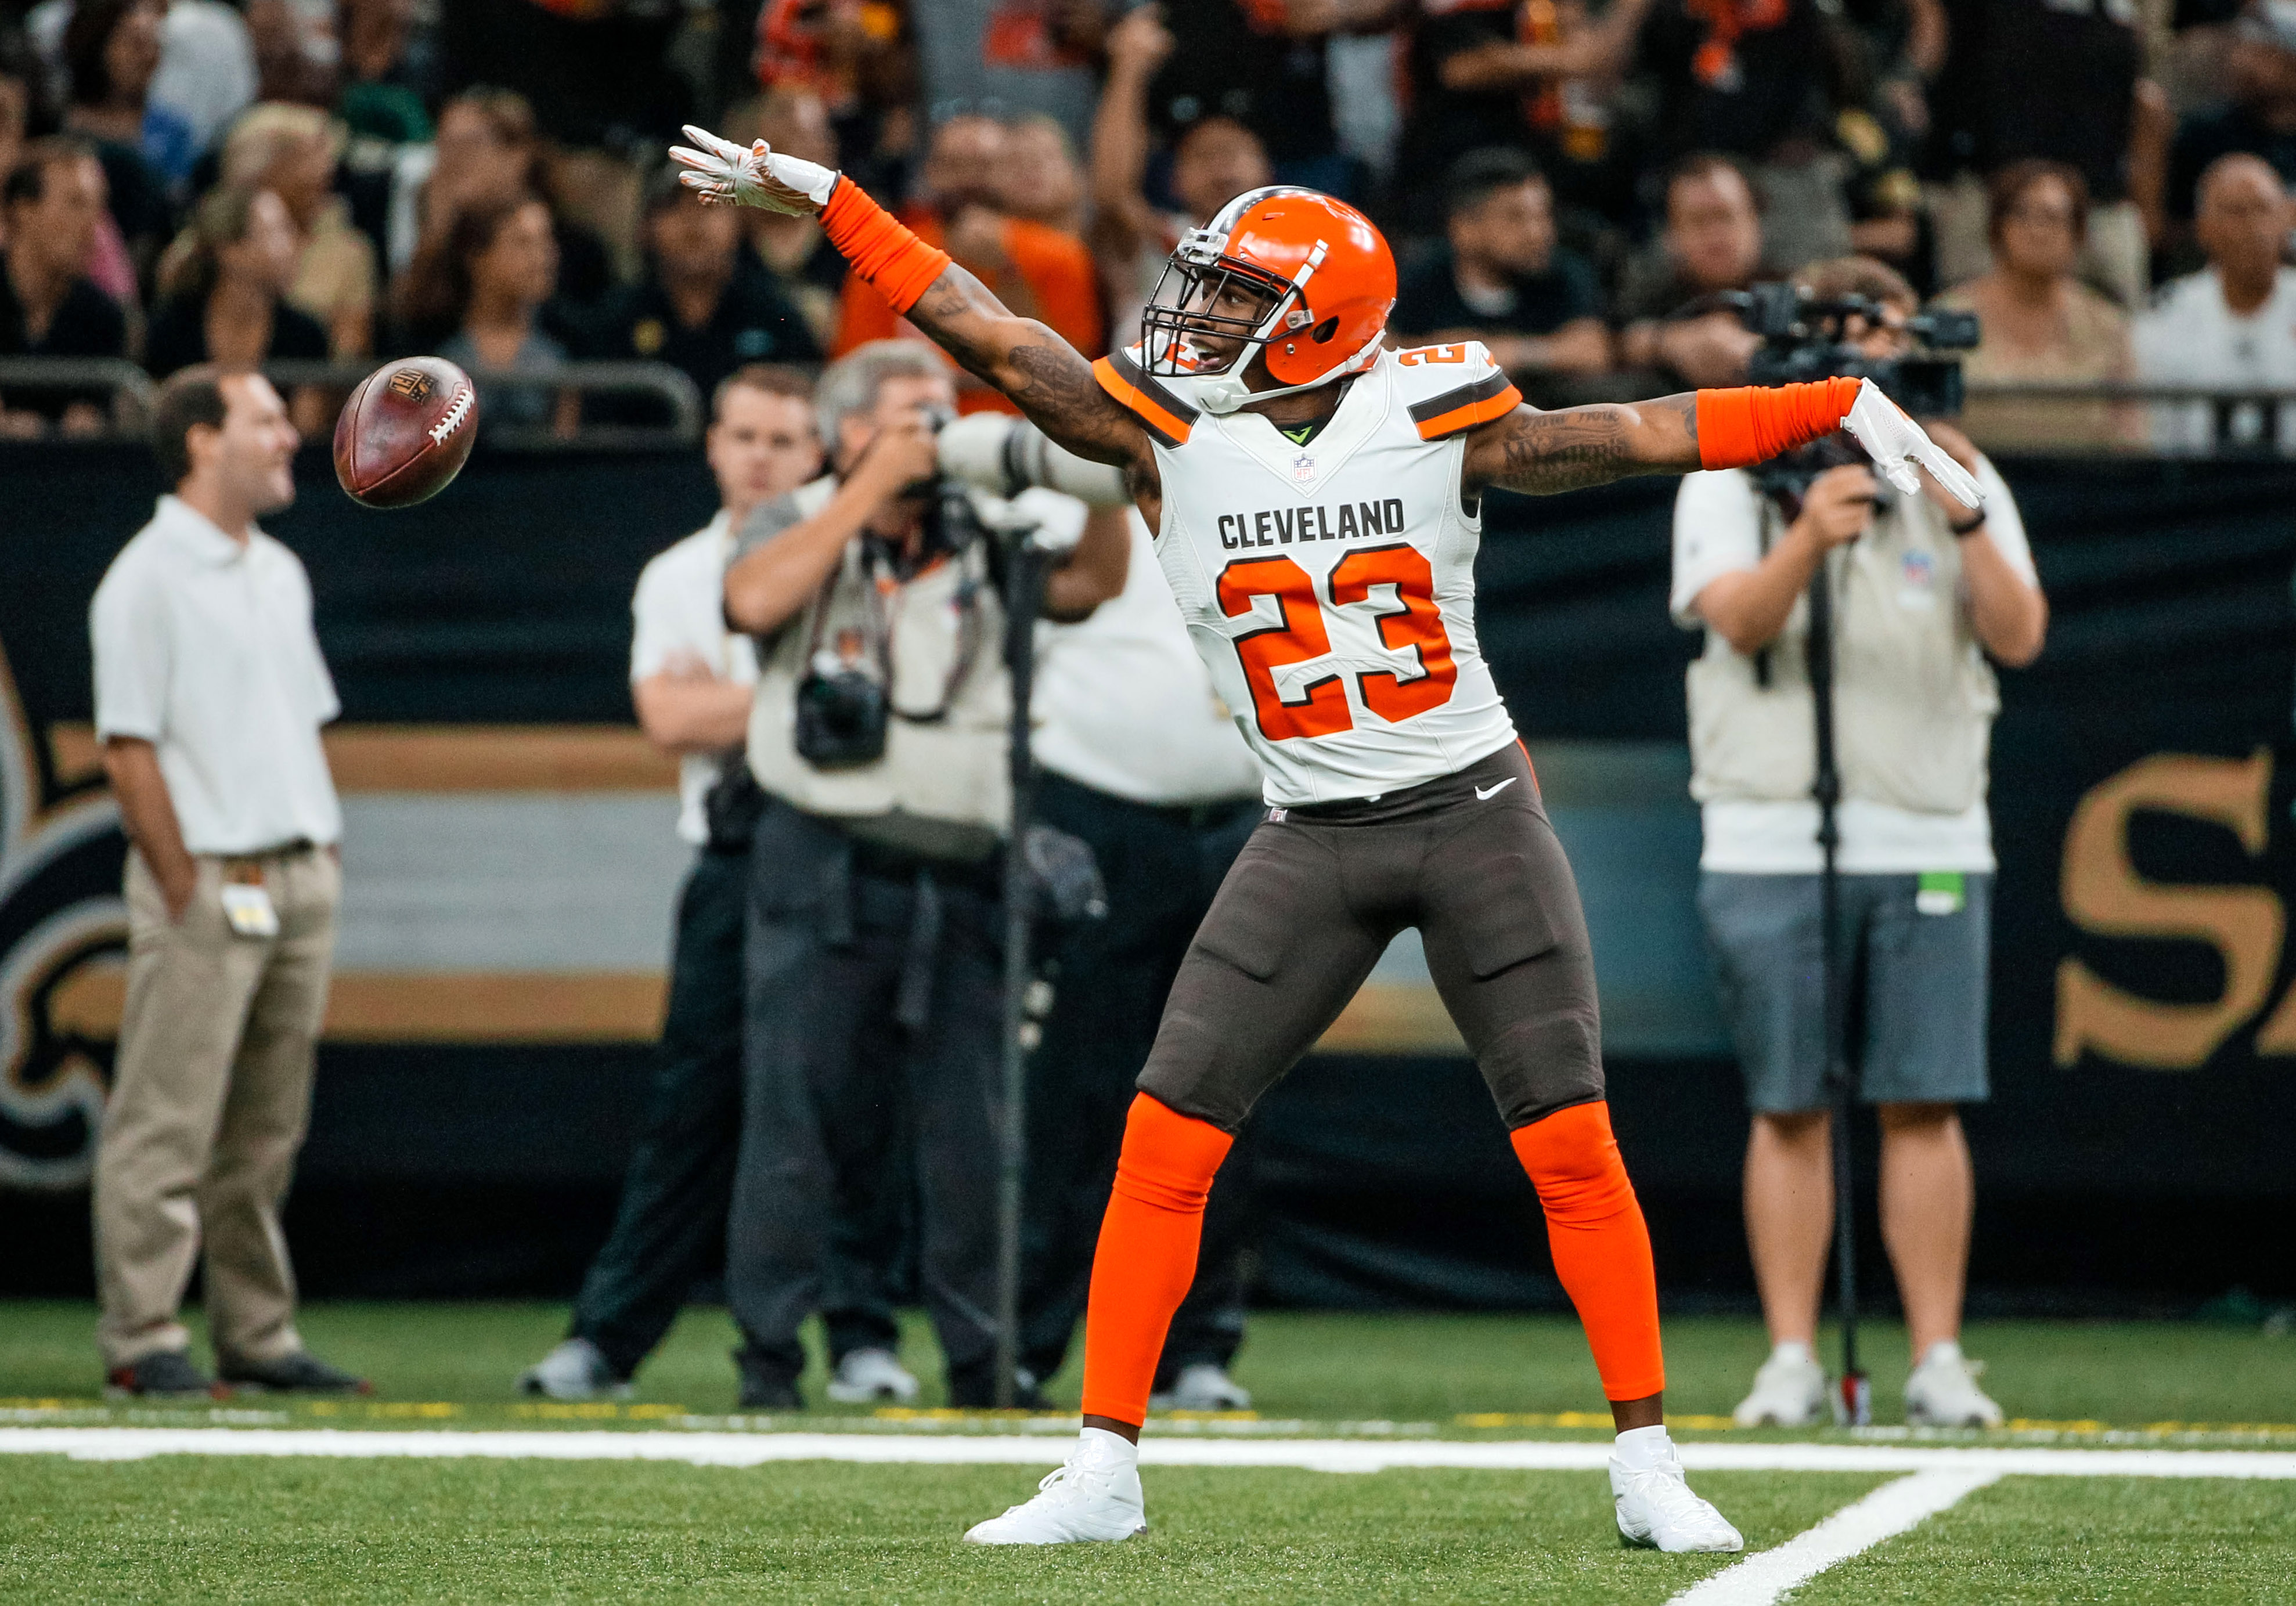 NFL: Cleveland Browns at New Orleans Saints